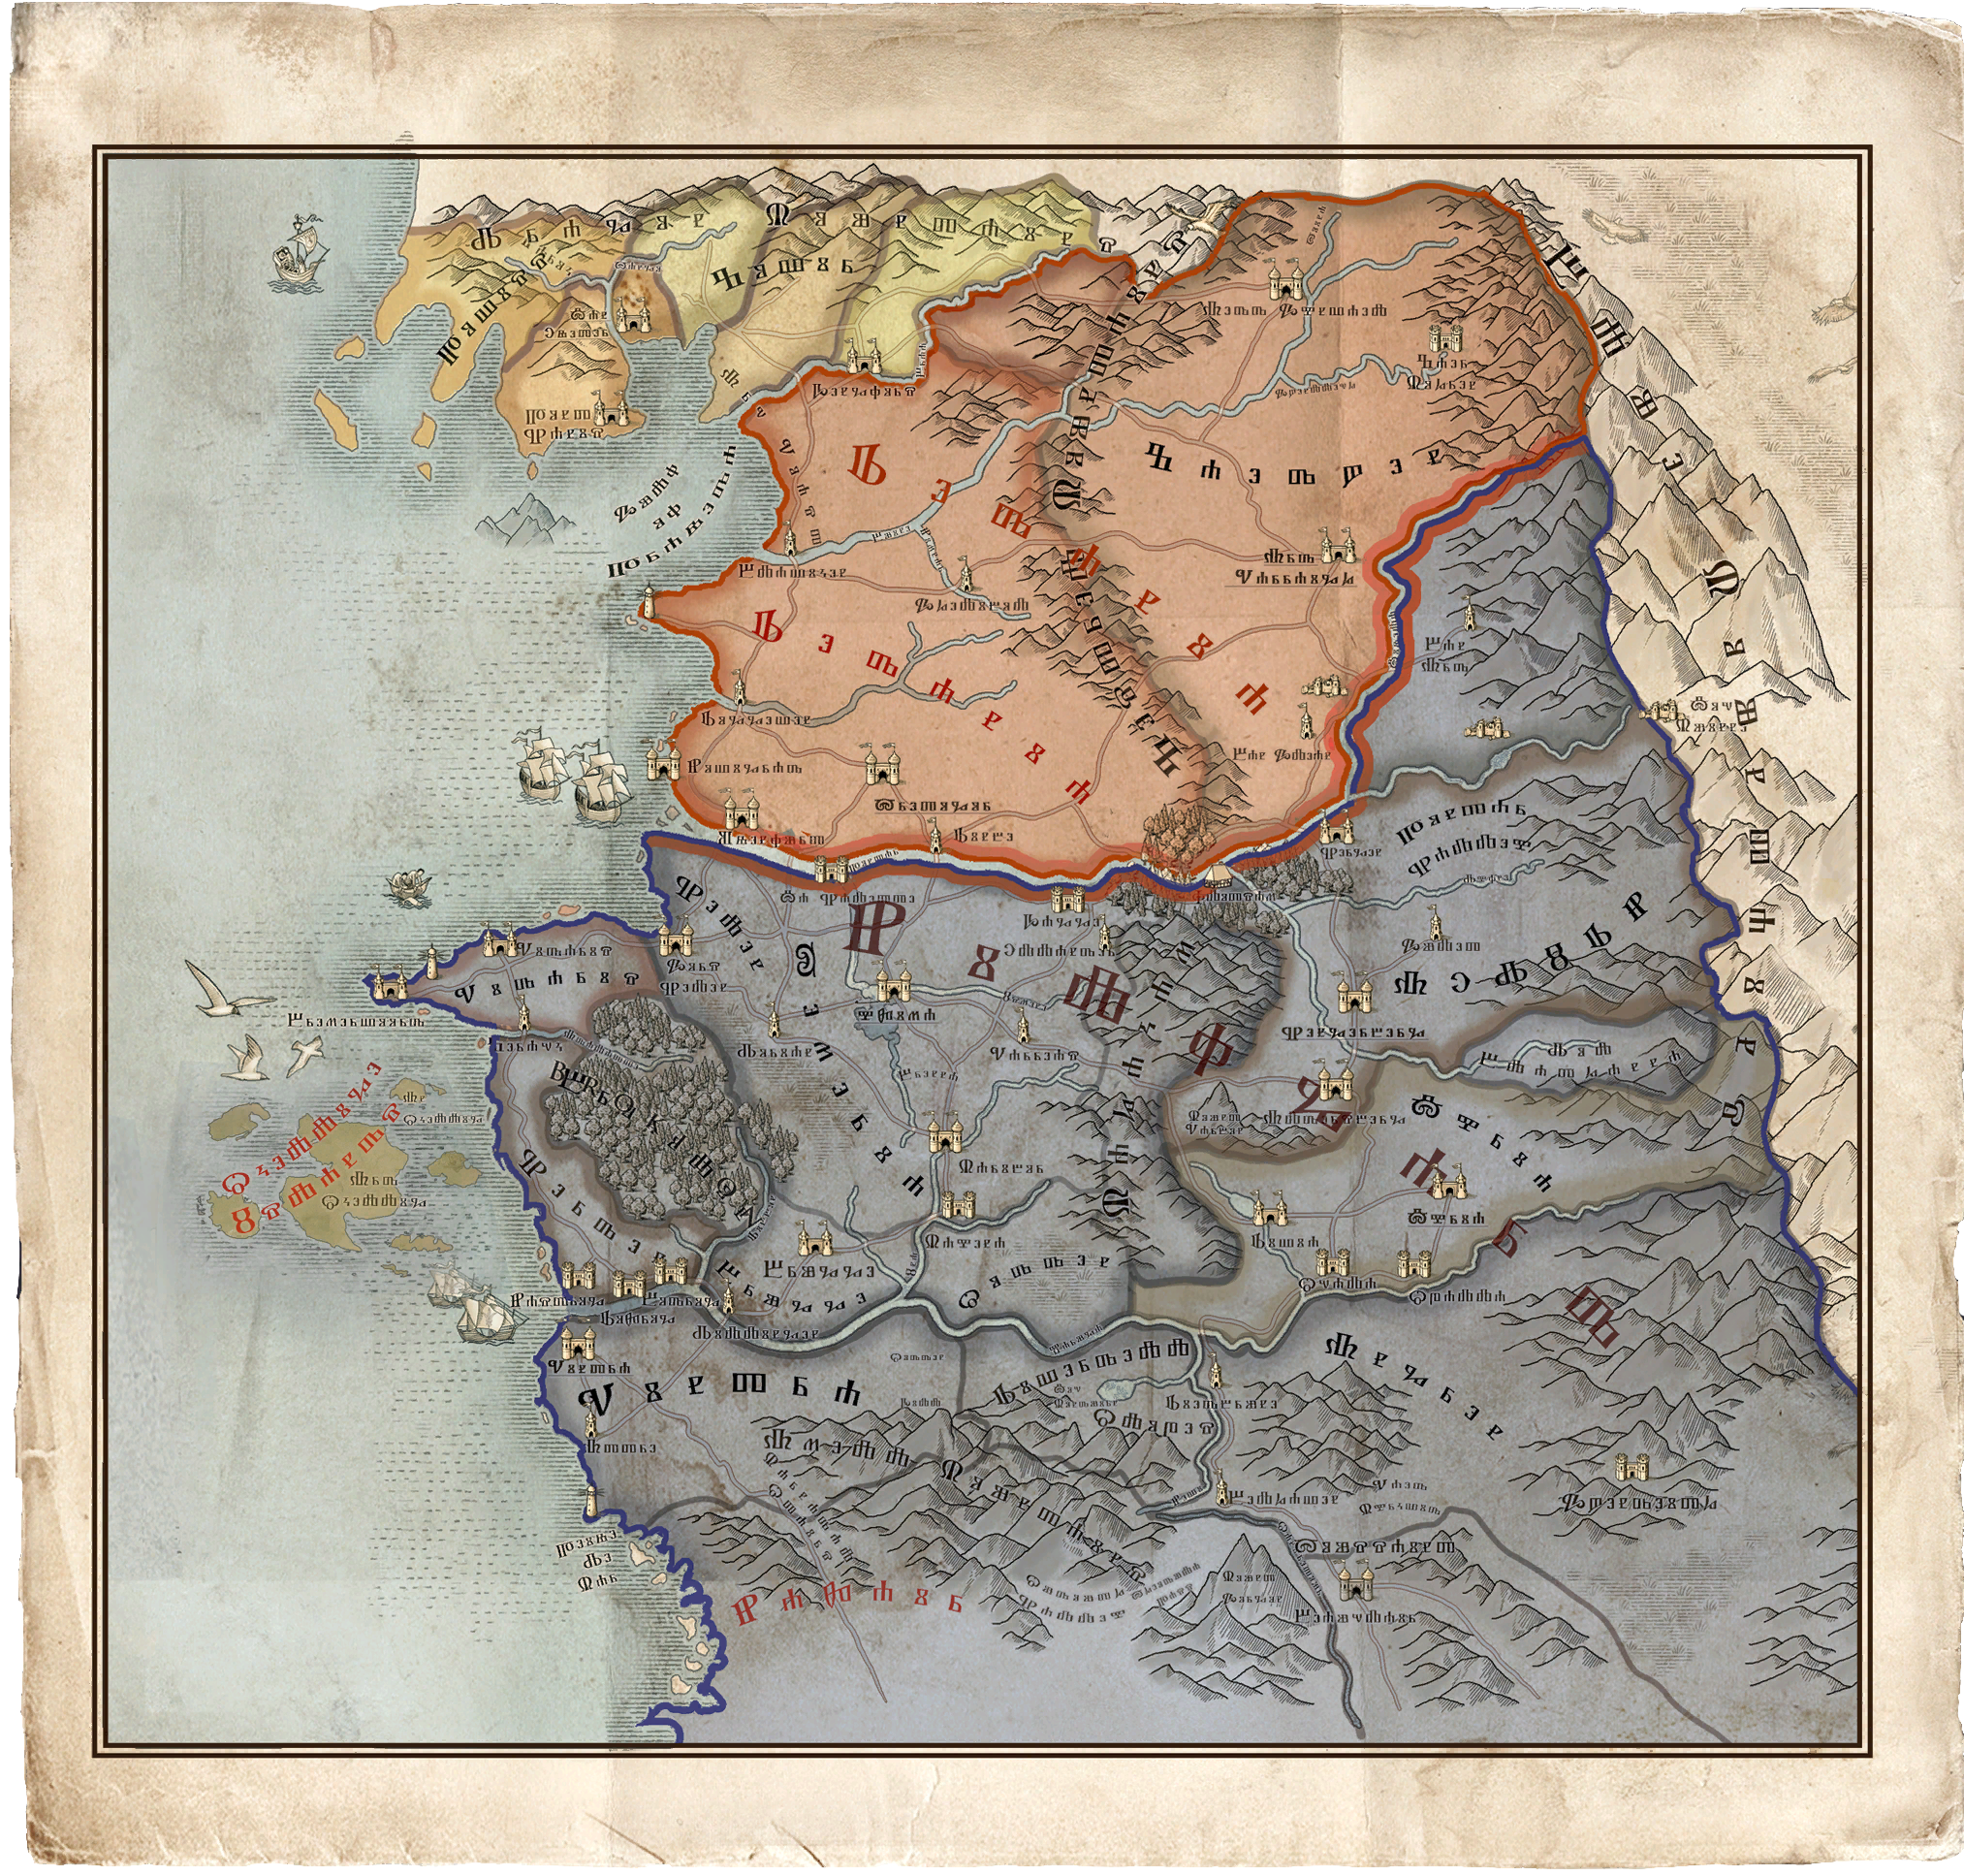 World map | Witcher Wiki | FANDOM powered by Wikia